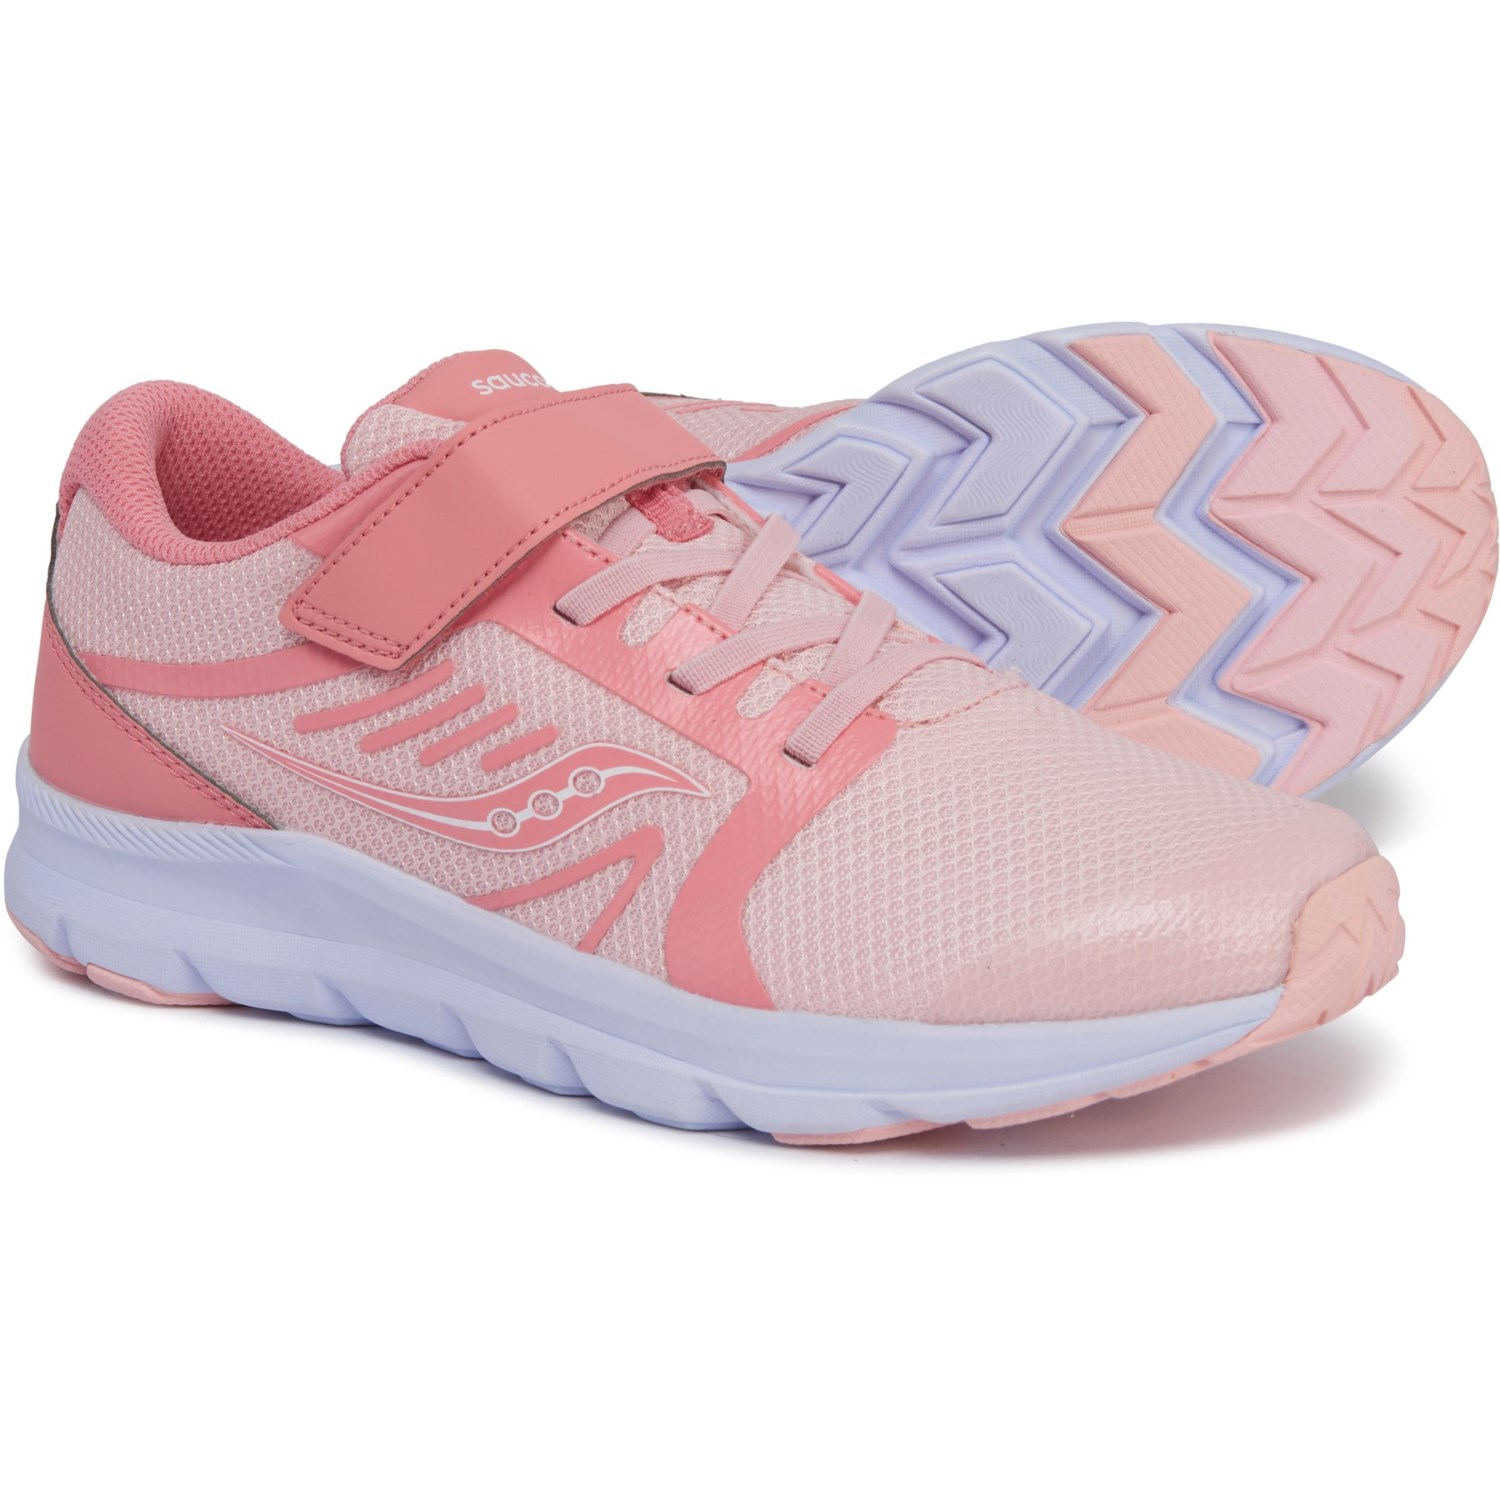 7b7a2ca19b Saucony Inferno Lite Running Shoes (For Girls) - Save 50%